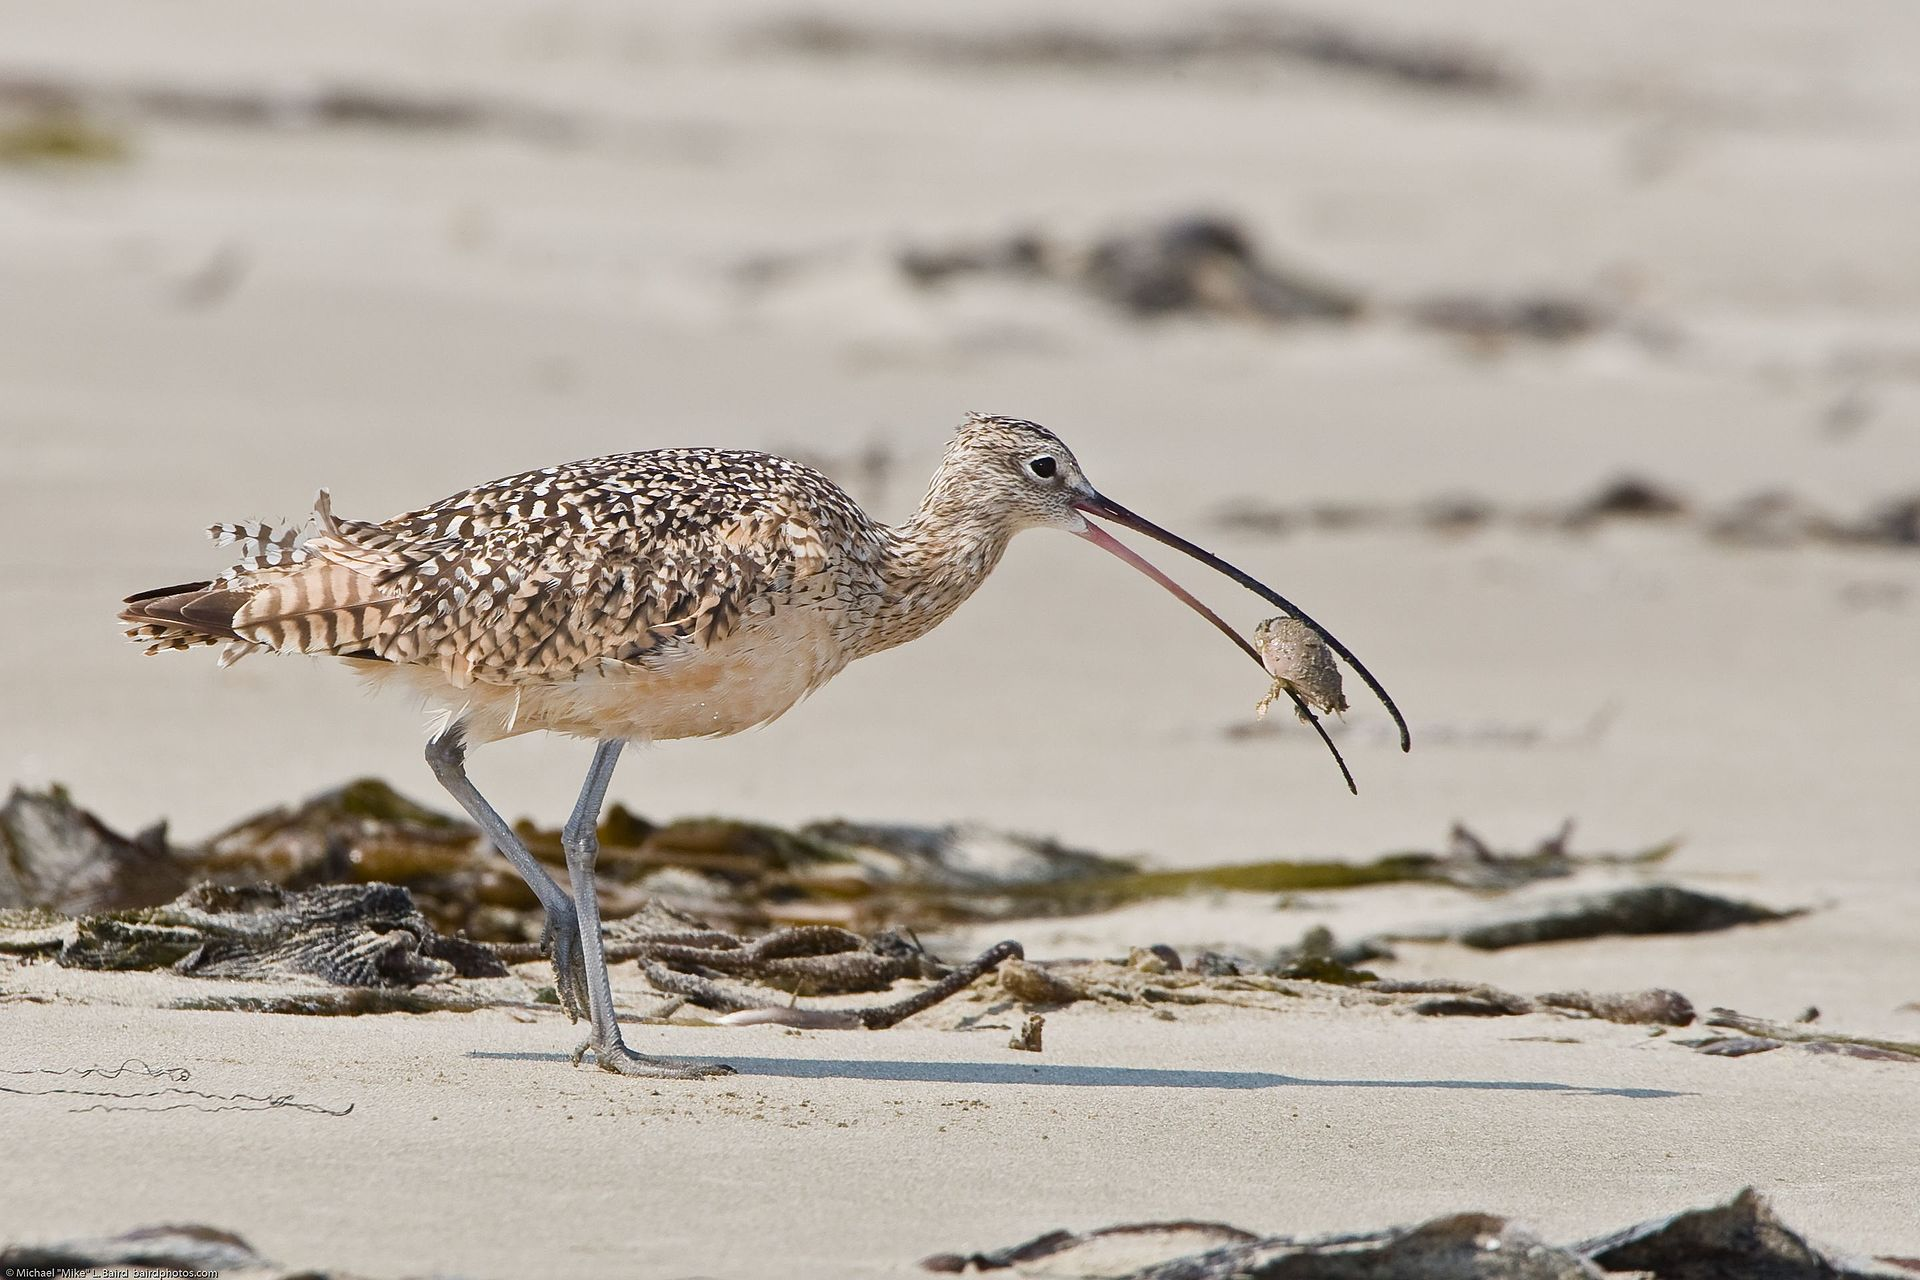 Long-billed Curlew eating a sand crab. Photo by M. L. Baird / Wikimedia.